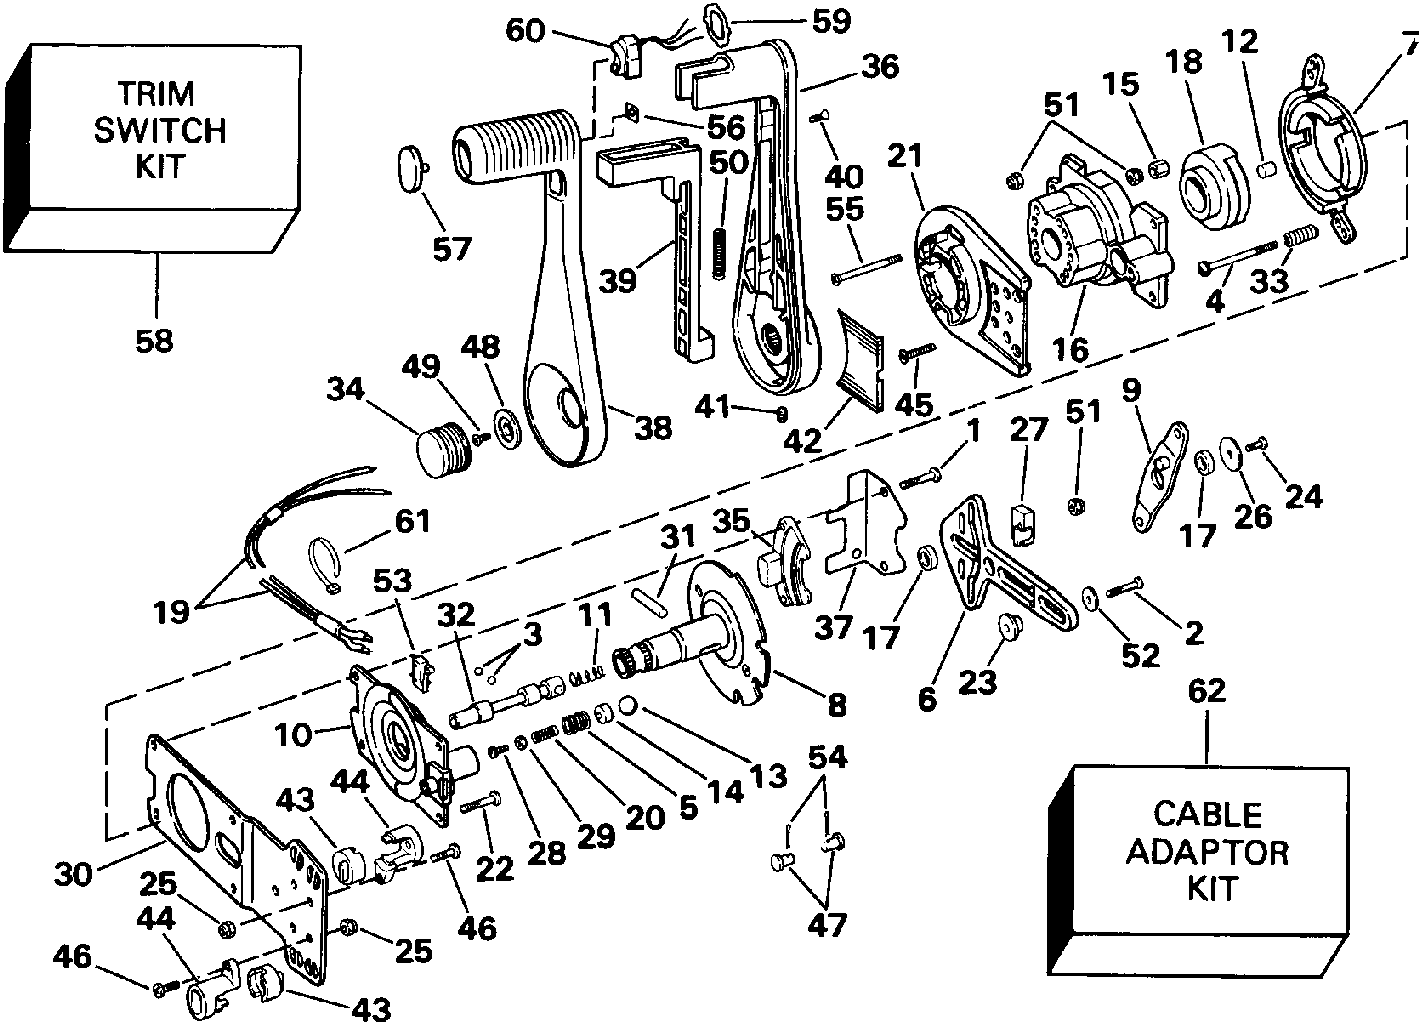 140 Hp Mercury Outboard Wiring Diagram